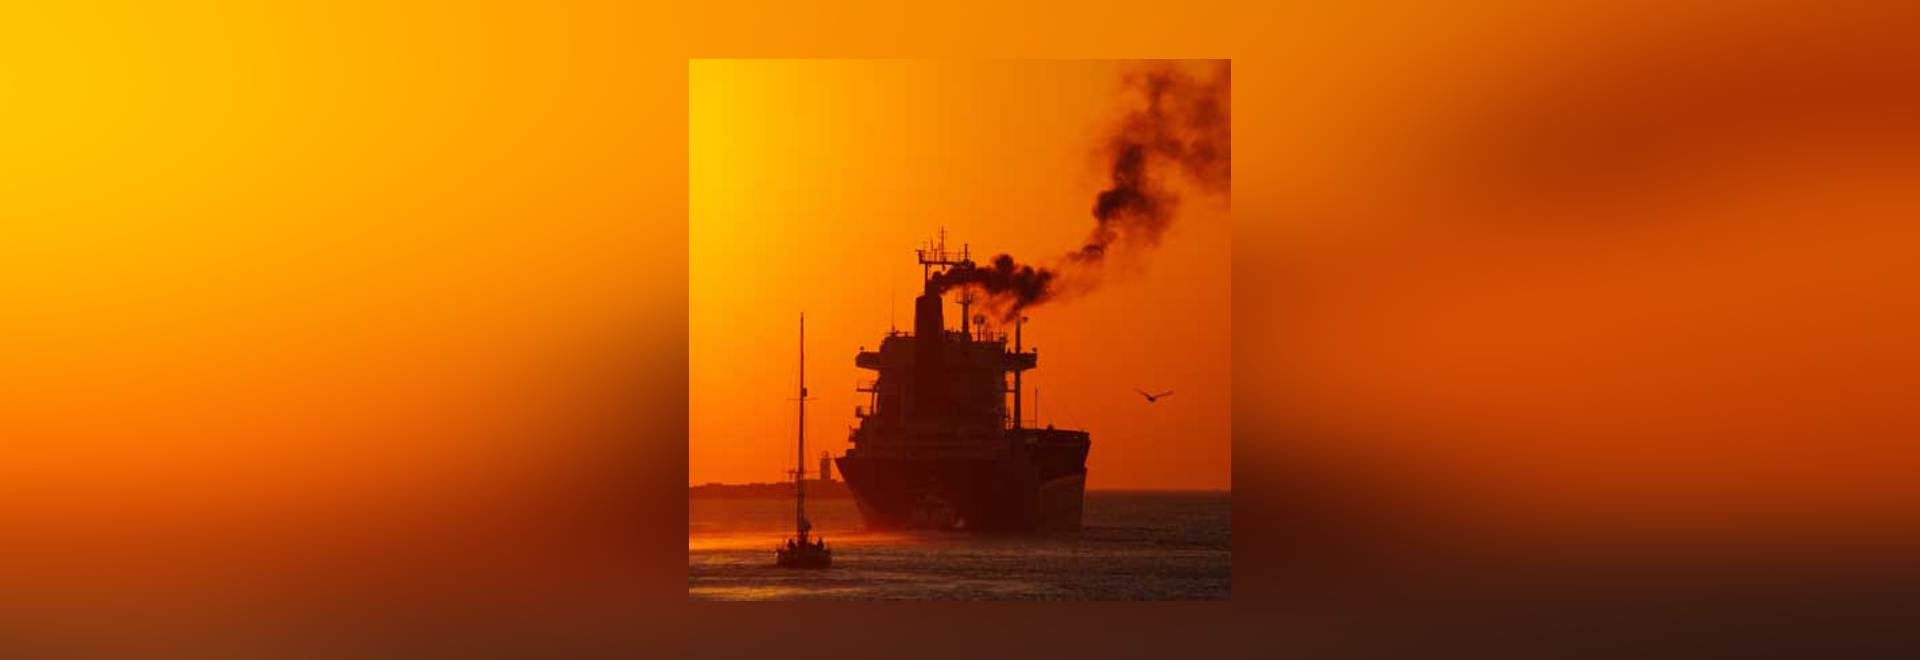 ​​Ships trading in designated emission control areas will have to use on board fuel oil with a sulphur content of no more than 0.10% from 1 January 2015, against the limit of 1.00% in effect up unt...